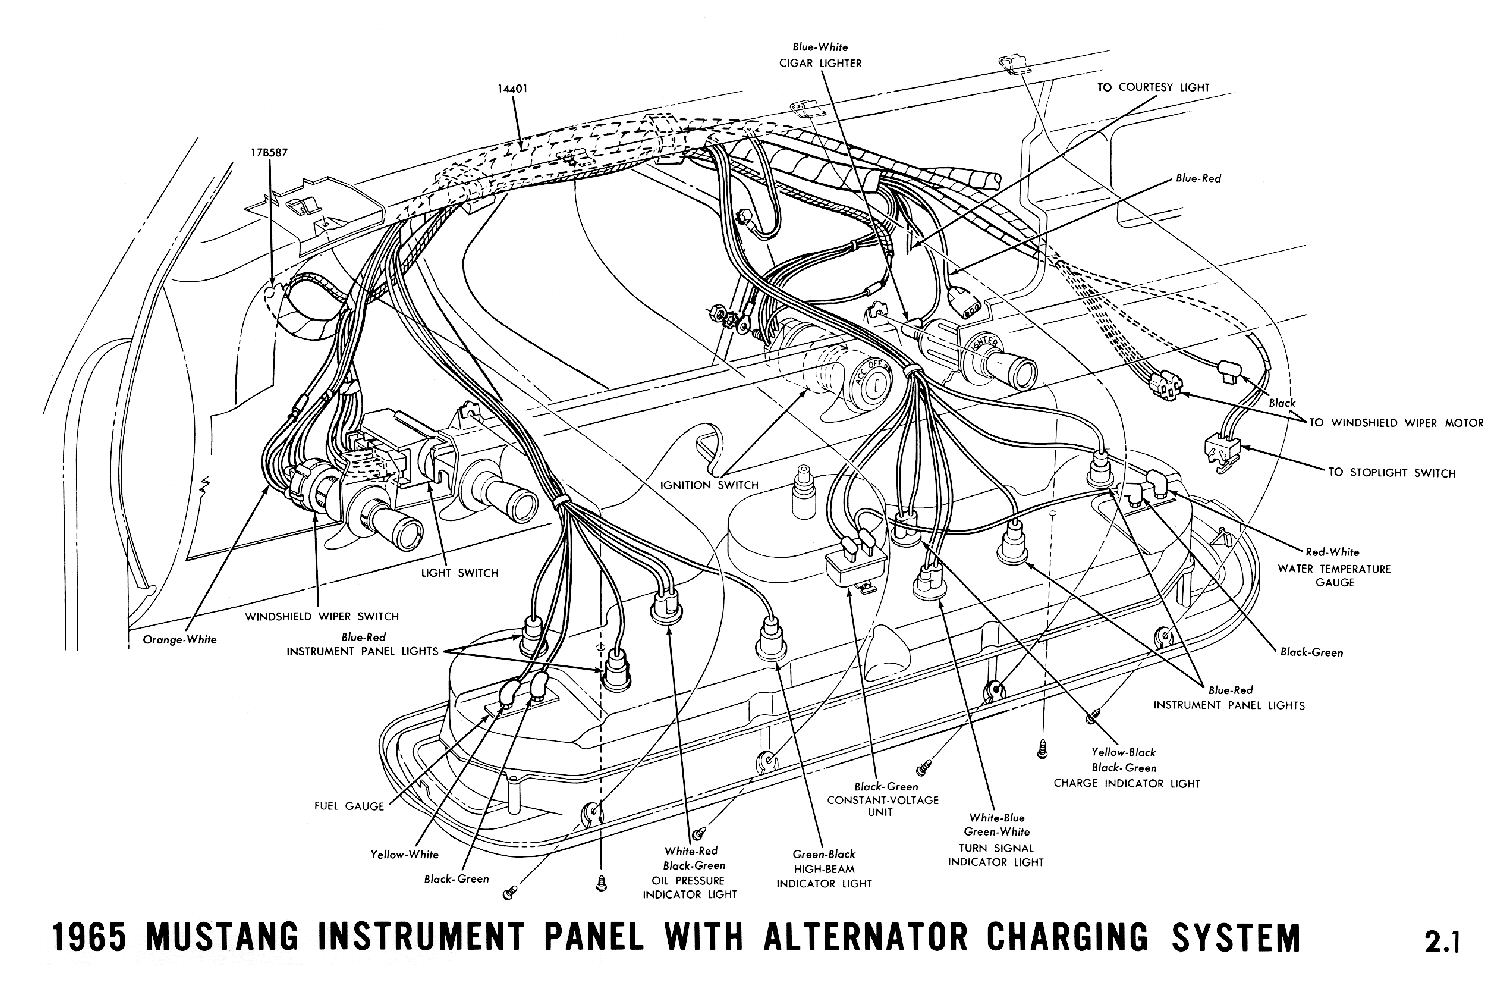 1965a 65 mustang dash wiring diagram 1965 ford mustang wiring diagram 2005 ford mustang instrument cluster wiring diagram at crackthecode.co